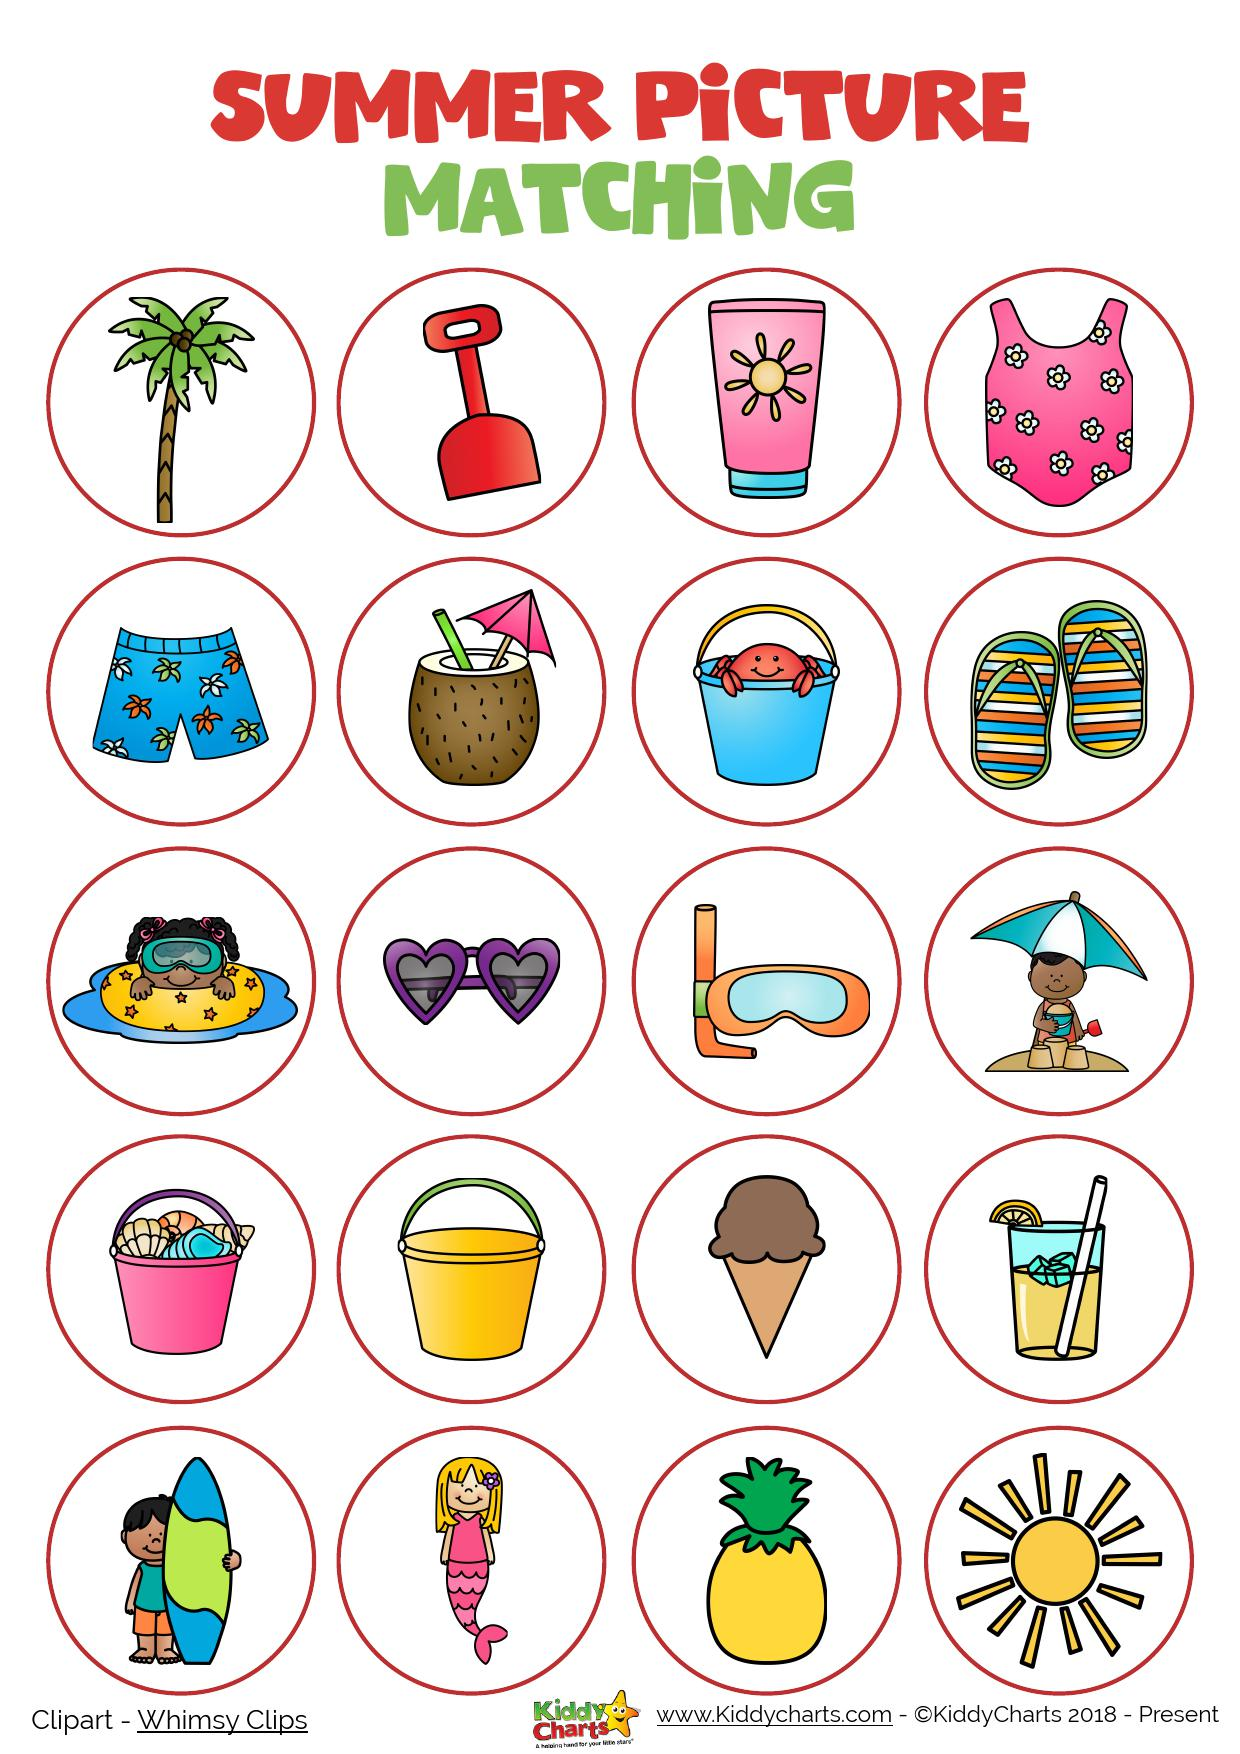 Day 3 Summer Matching Picture Printable Activity